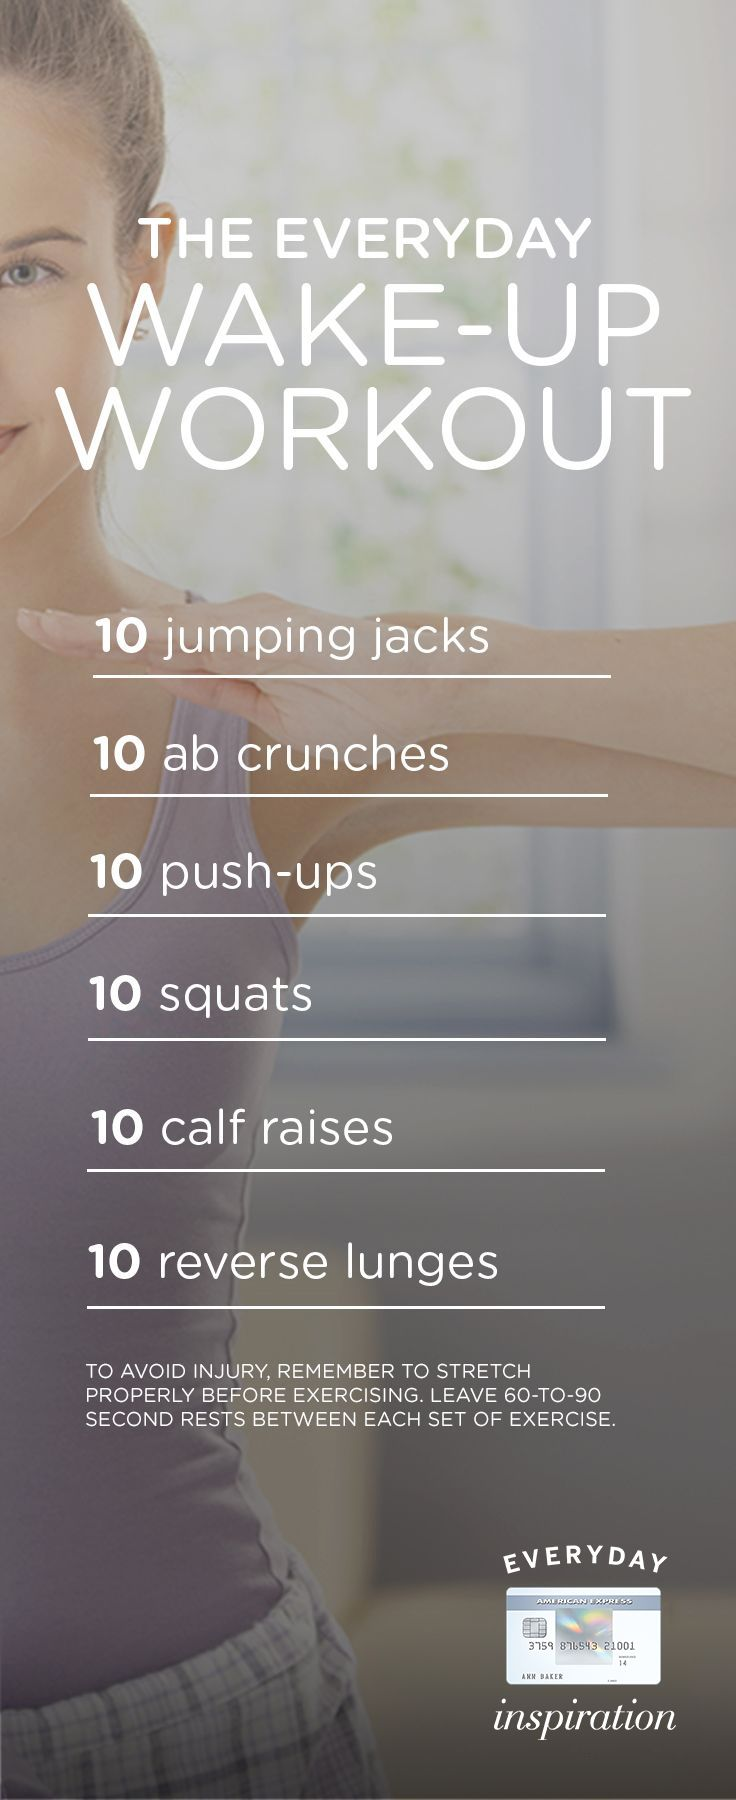 Get your body back and look great for your #EveryDayMoments. You don't even need equipment to get in shape with this quick, low-impact workout that keeps you engaged and focused while gradually increasing intensity. #SPON #Ad